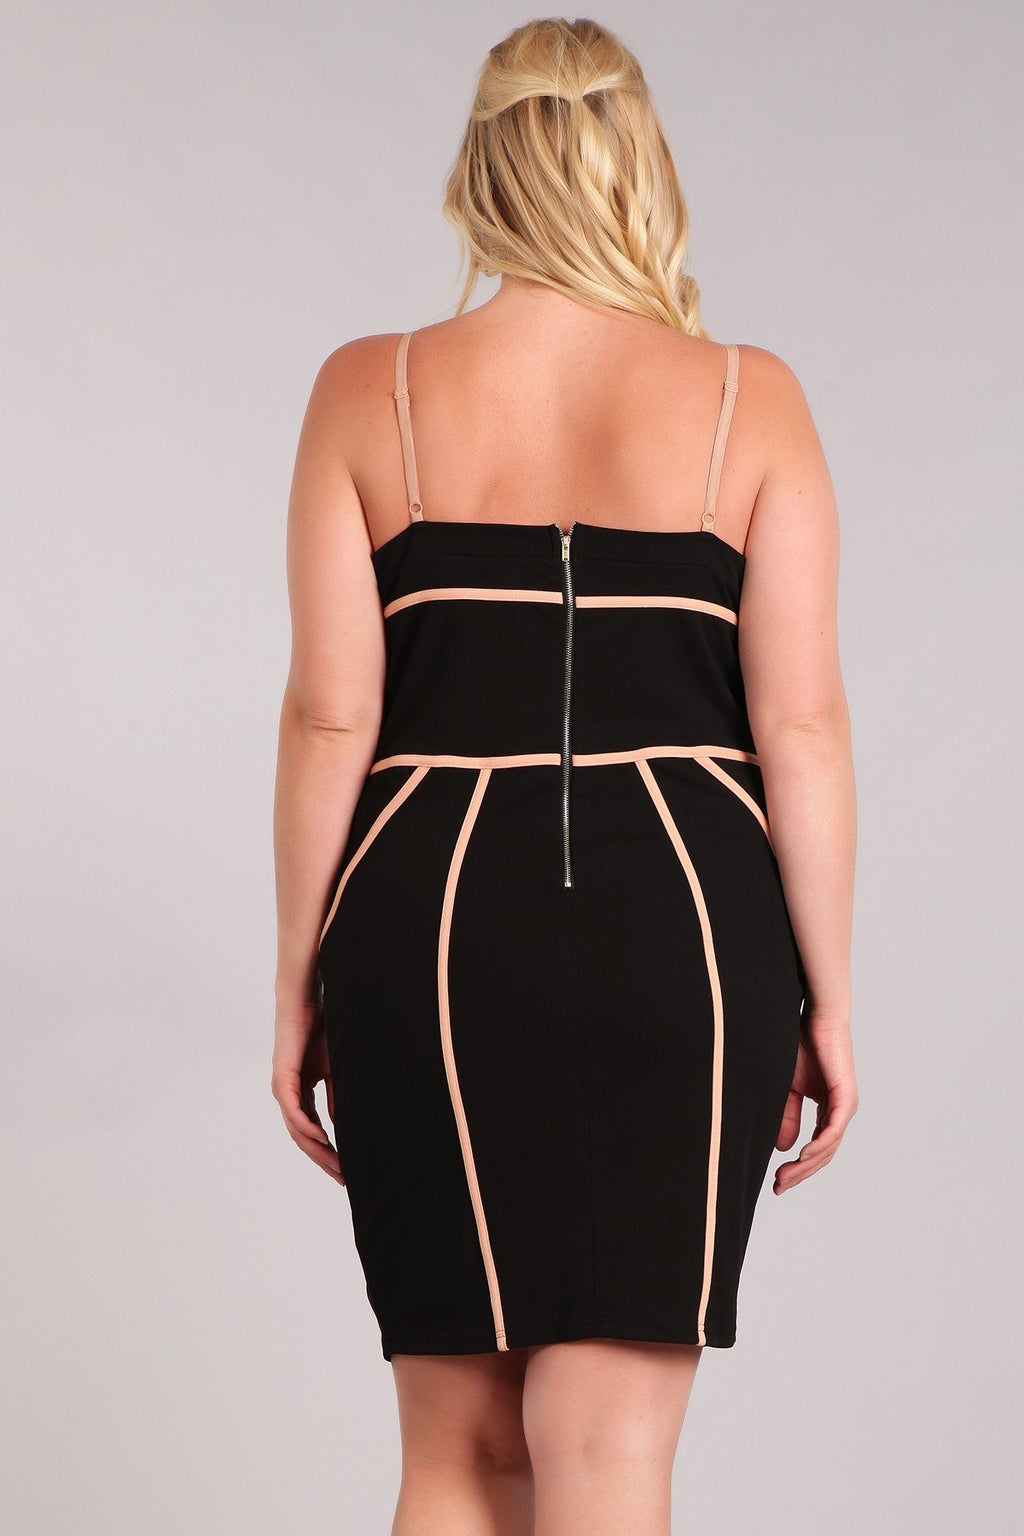 Plus Size Solid Sleeveless Open Back Mini Dress